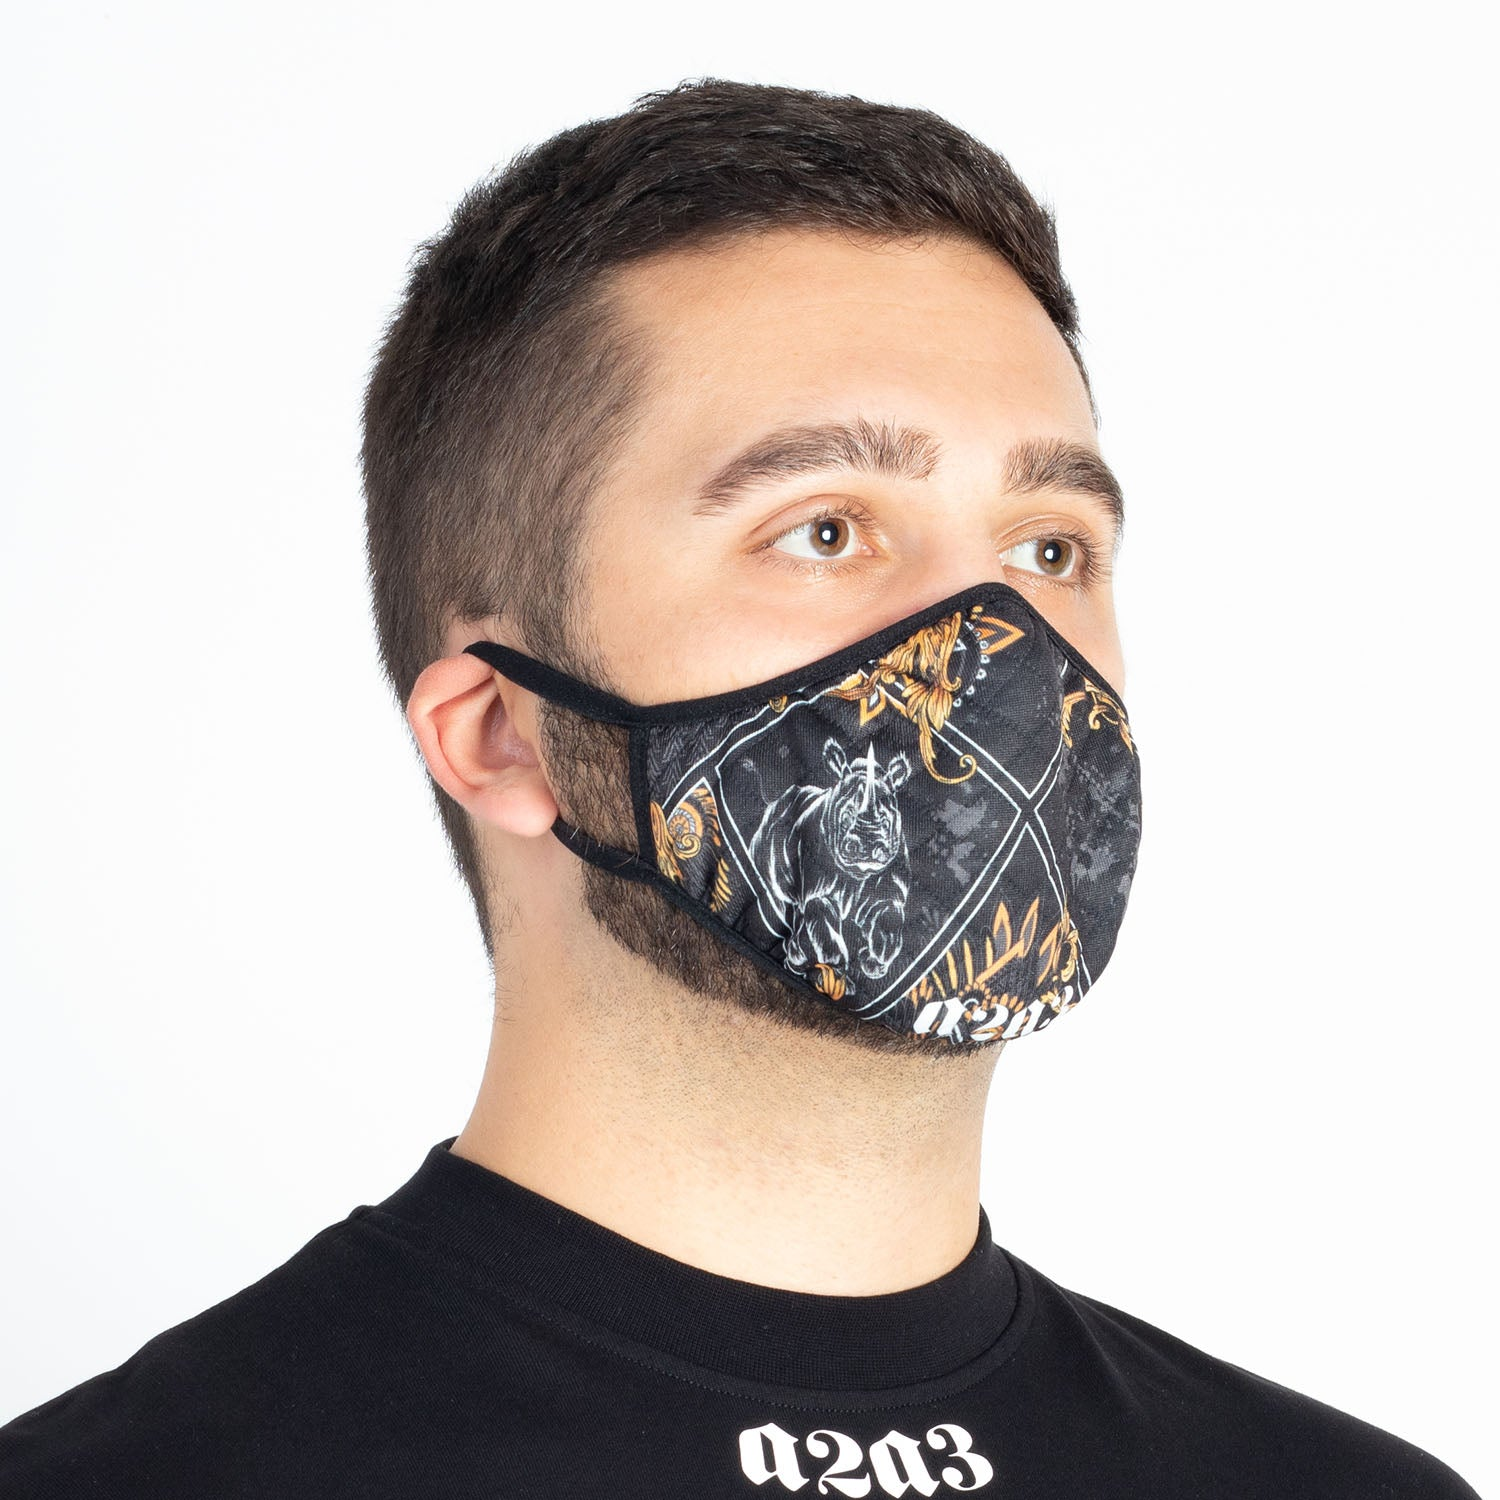 Sudan Printed Mask (Black)